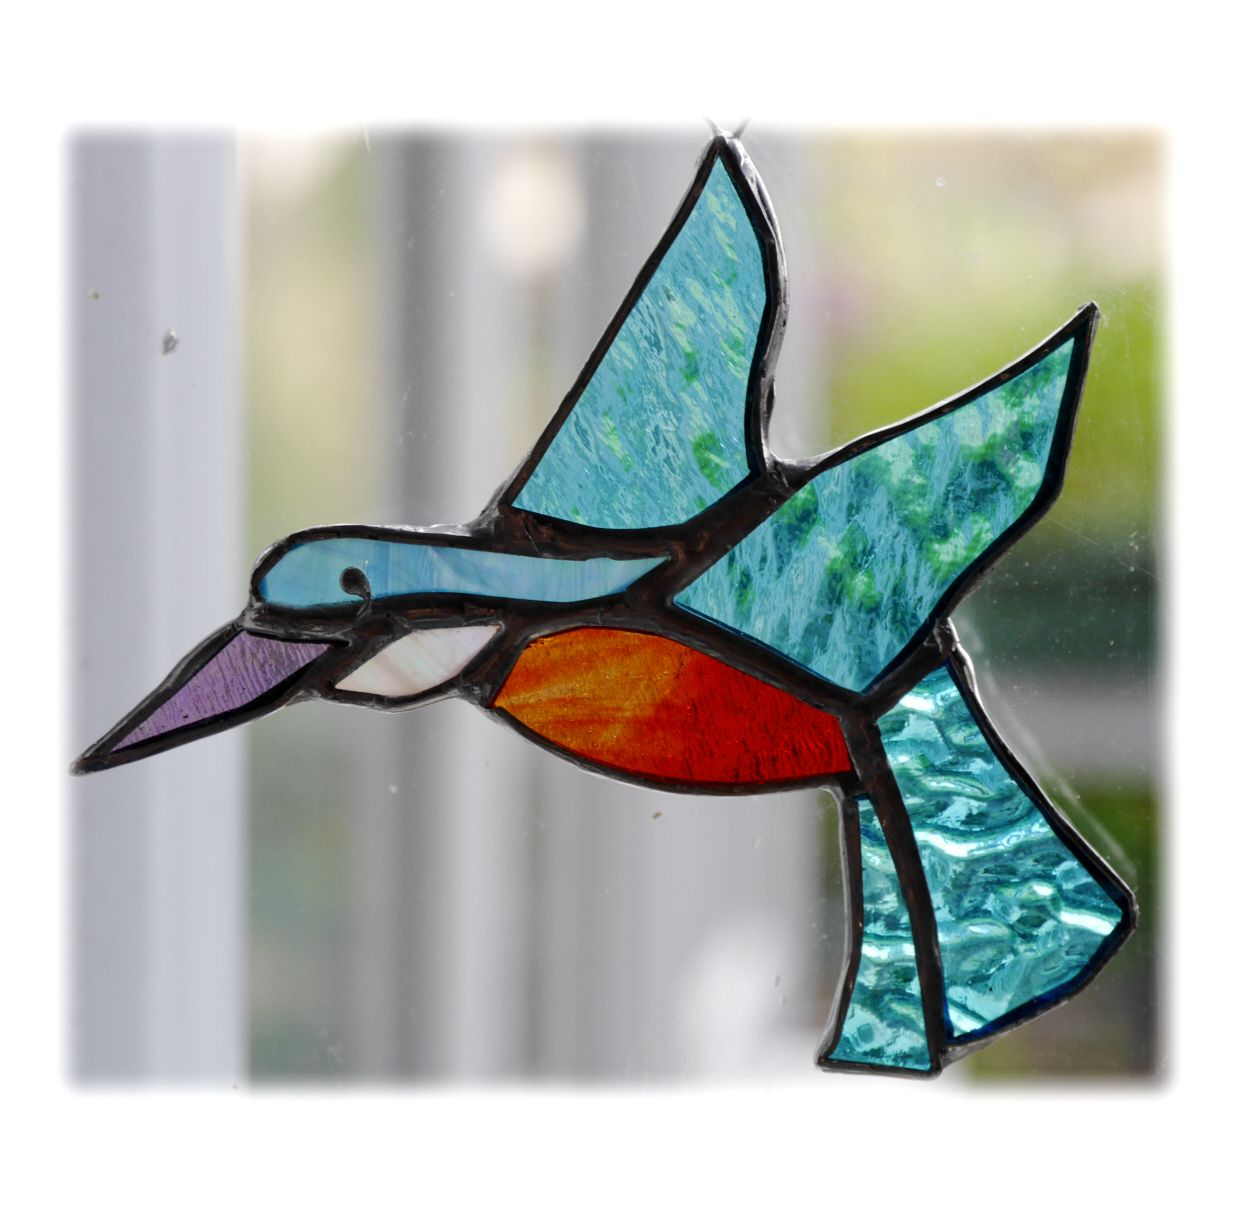 Hummingbird 056 left #1907 FREE 10.00